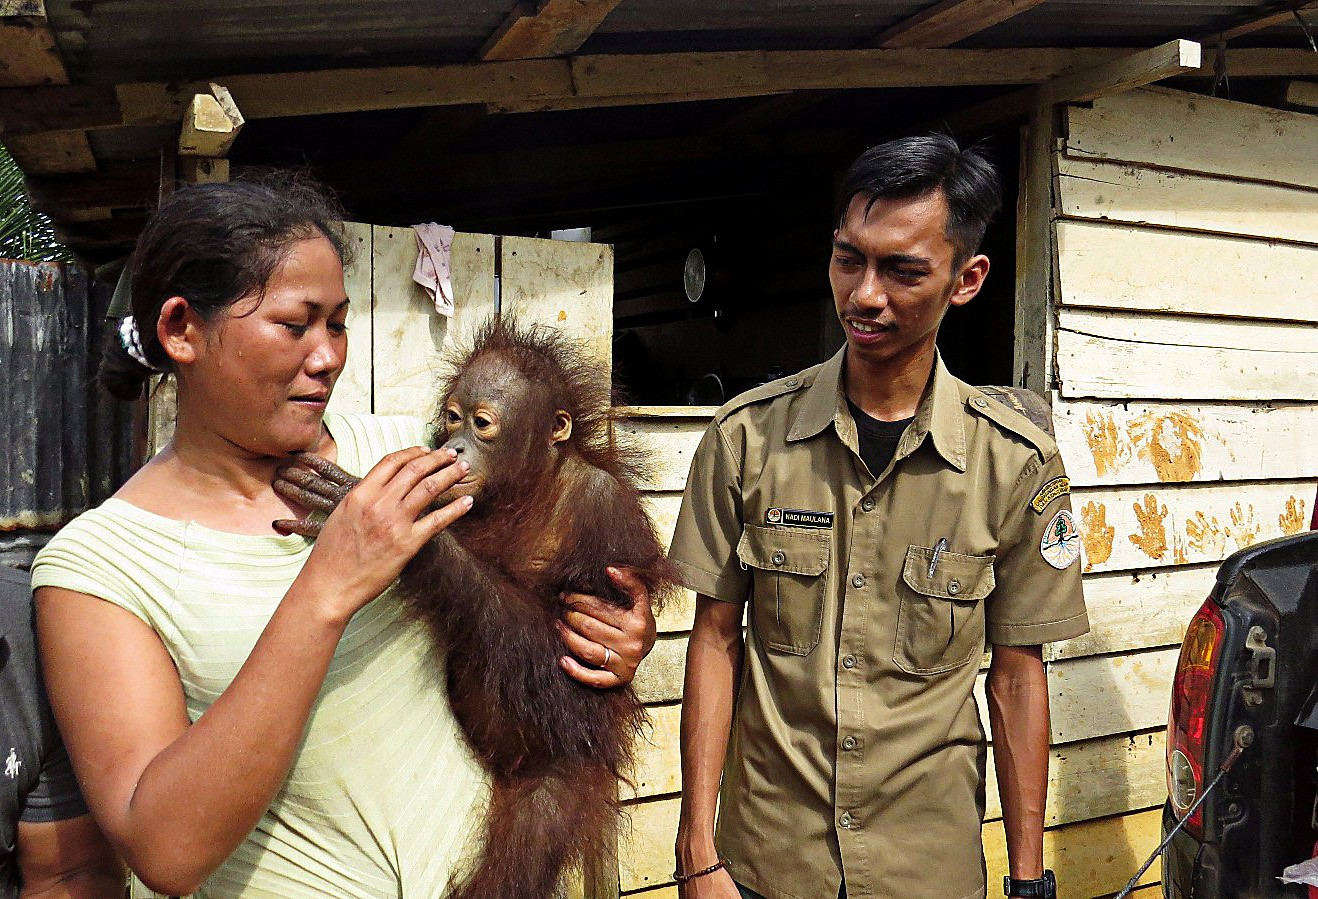 2 orangutans confiscated, handed over to conservation agency in West Kalimantan